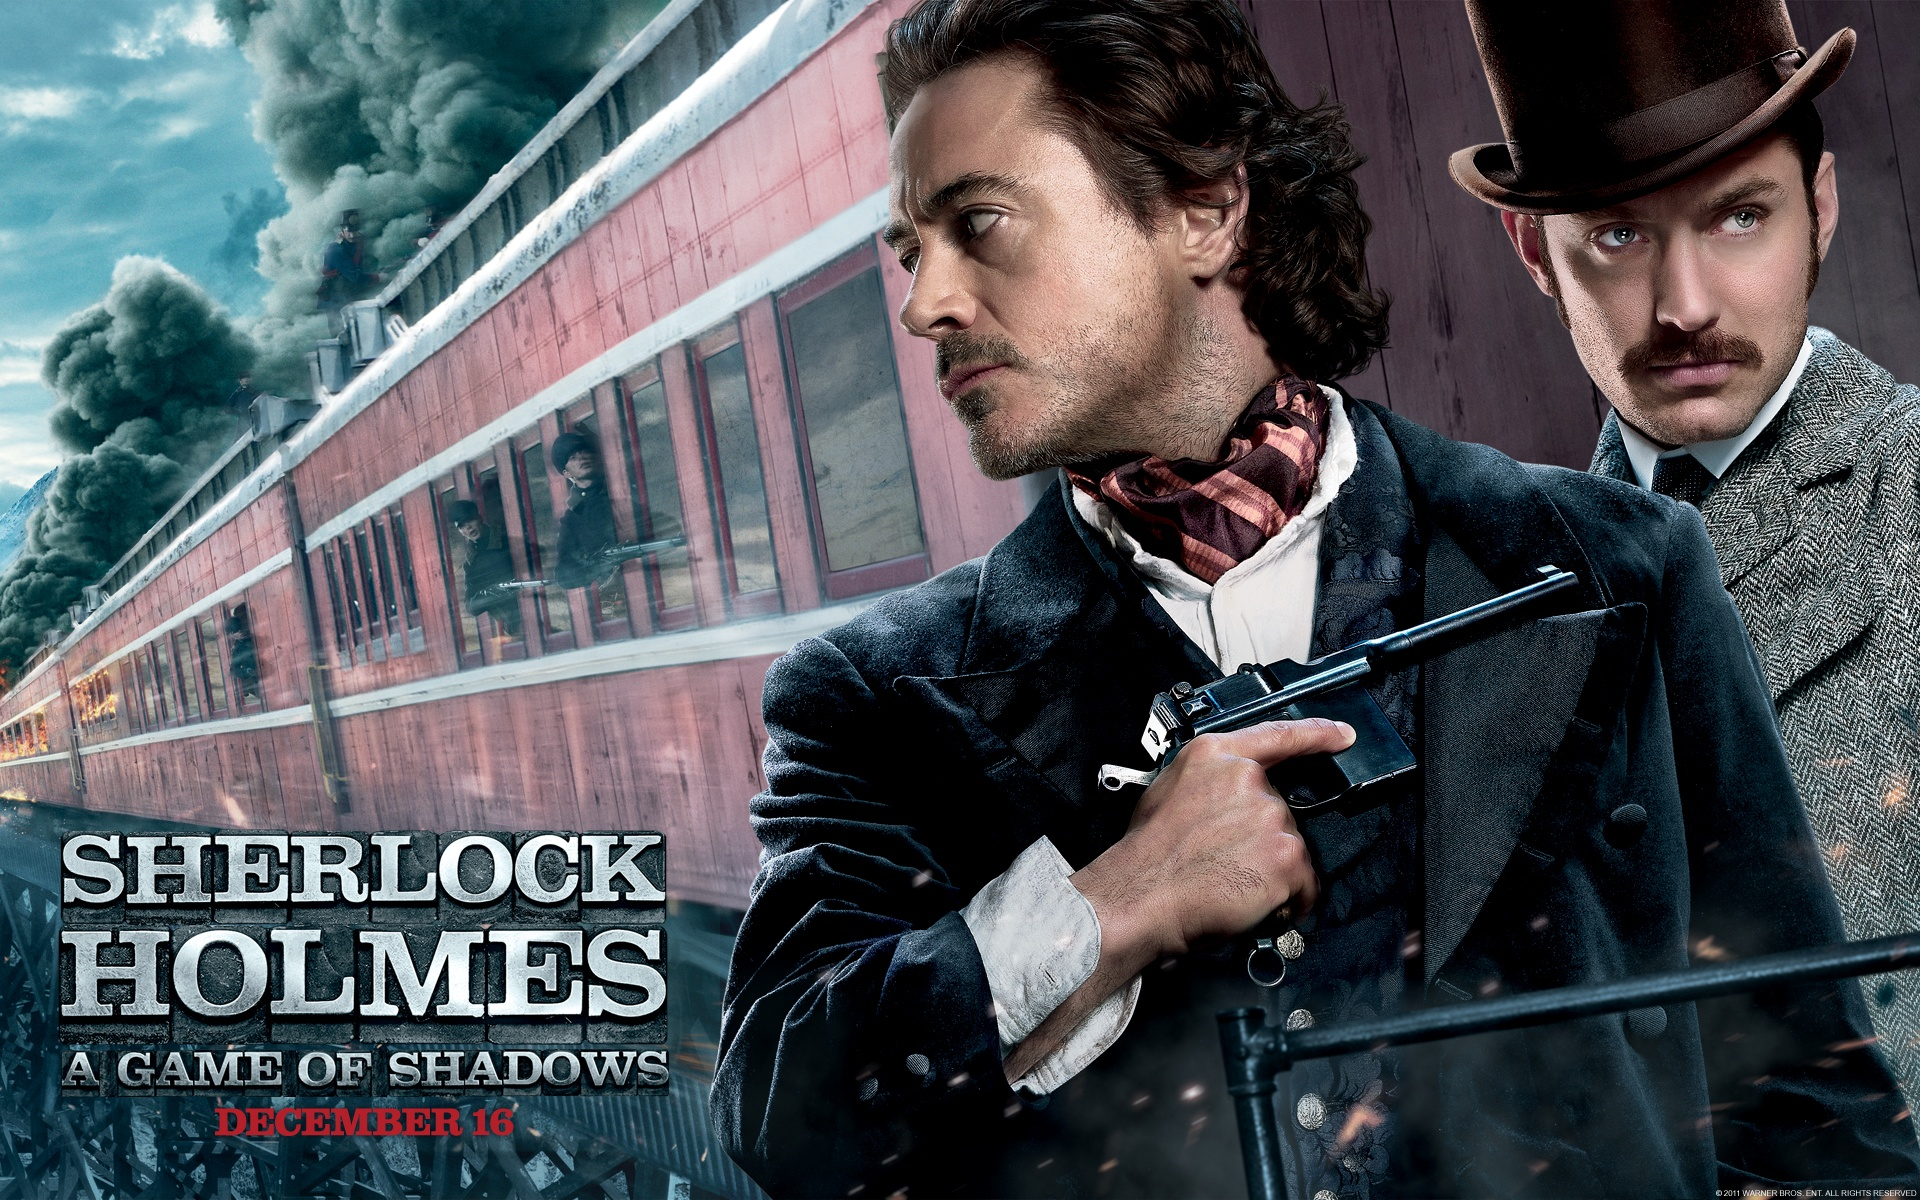 Download sherlock holmes 2 a game of shadows movie.